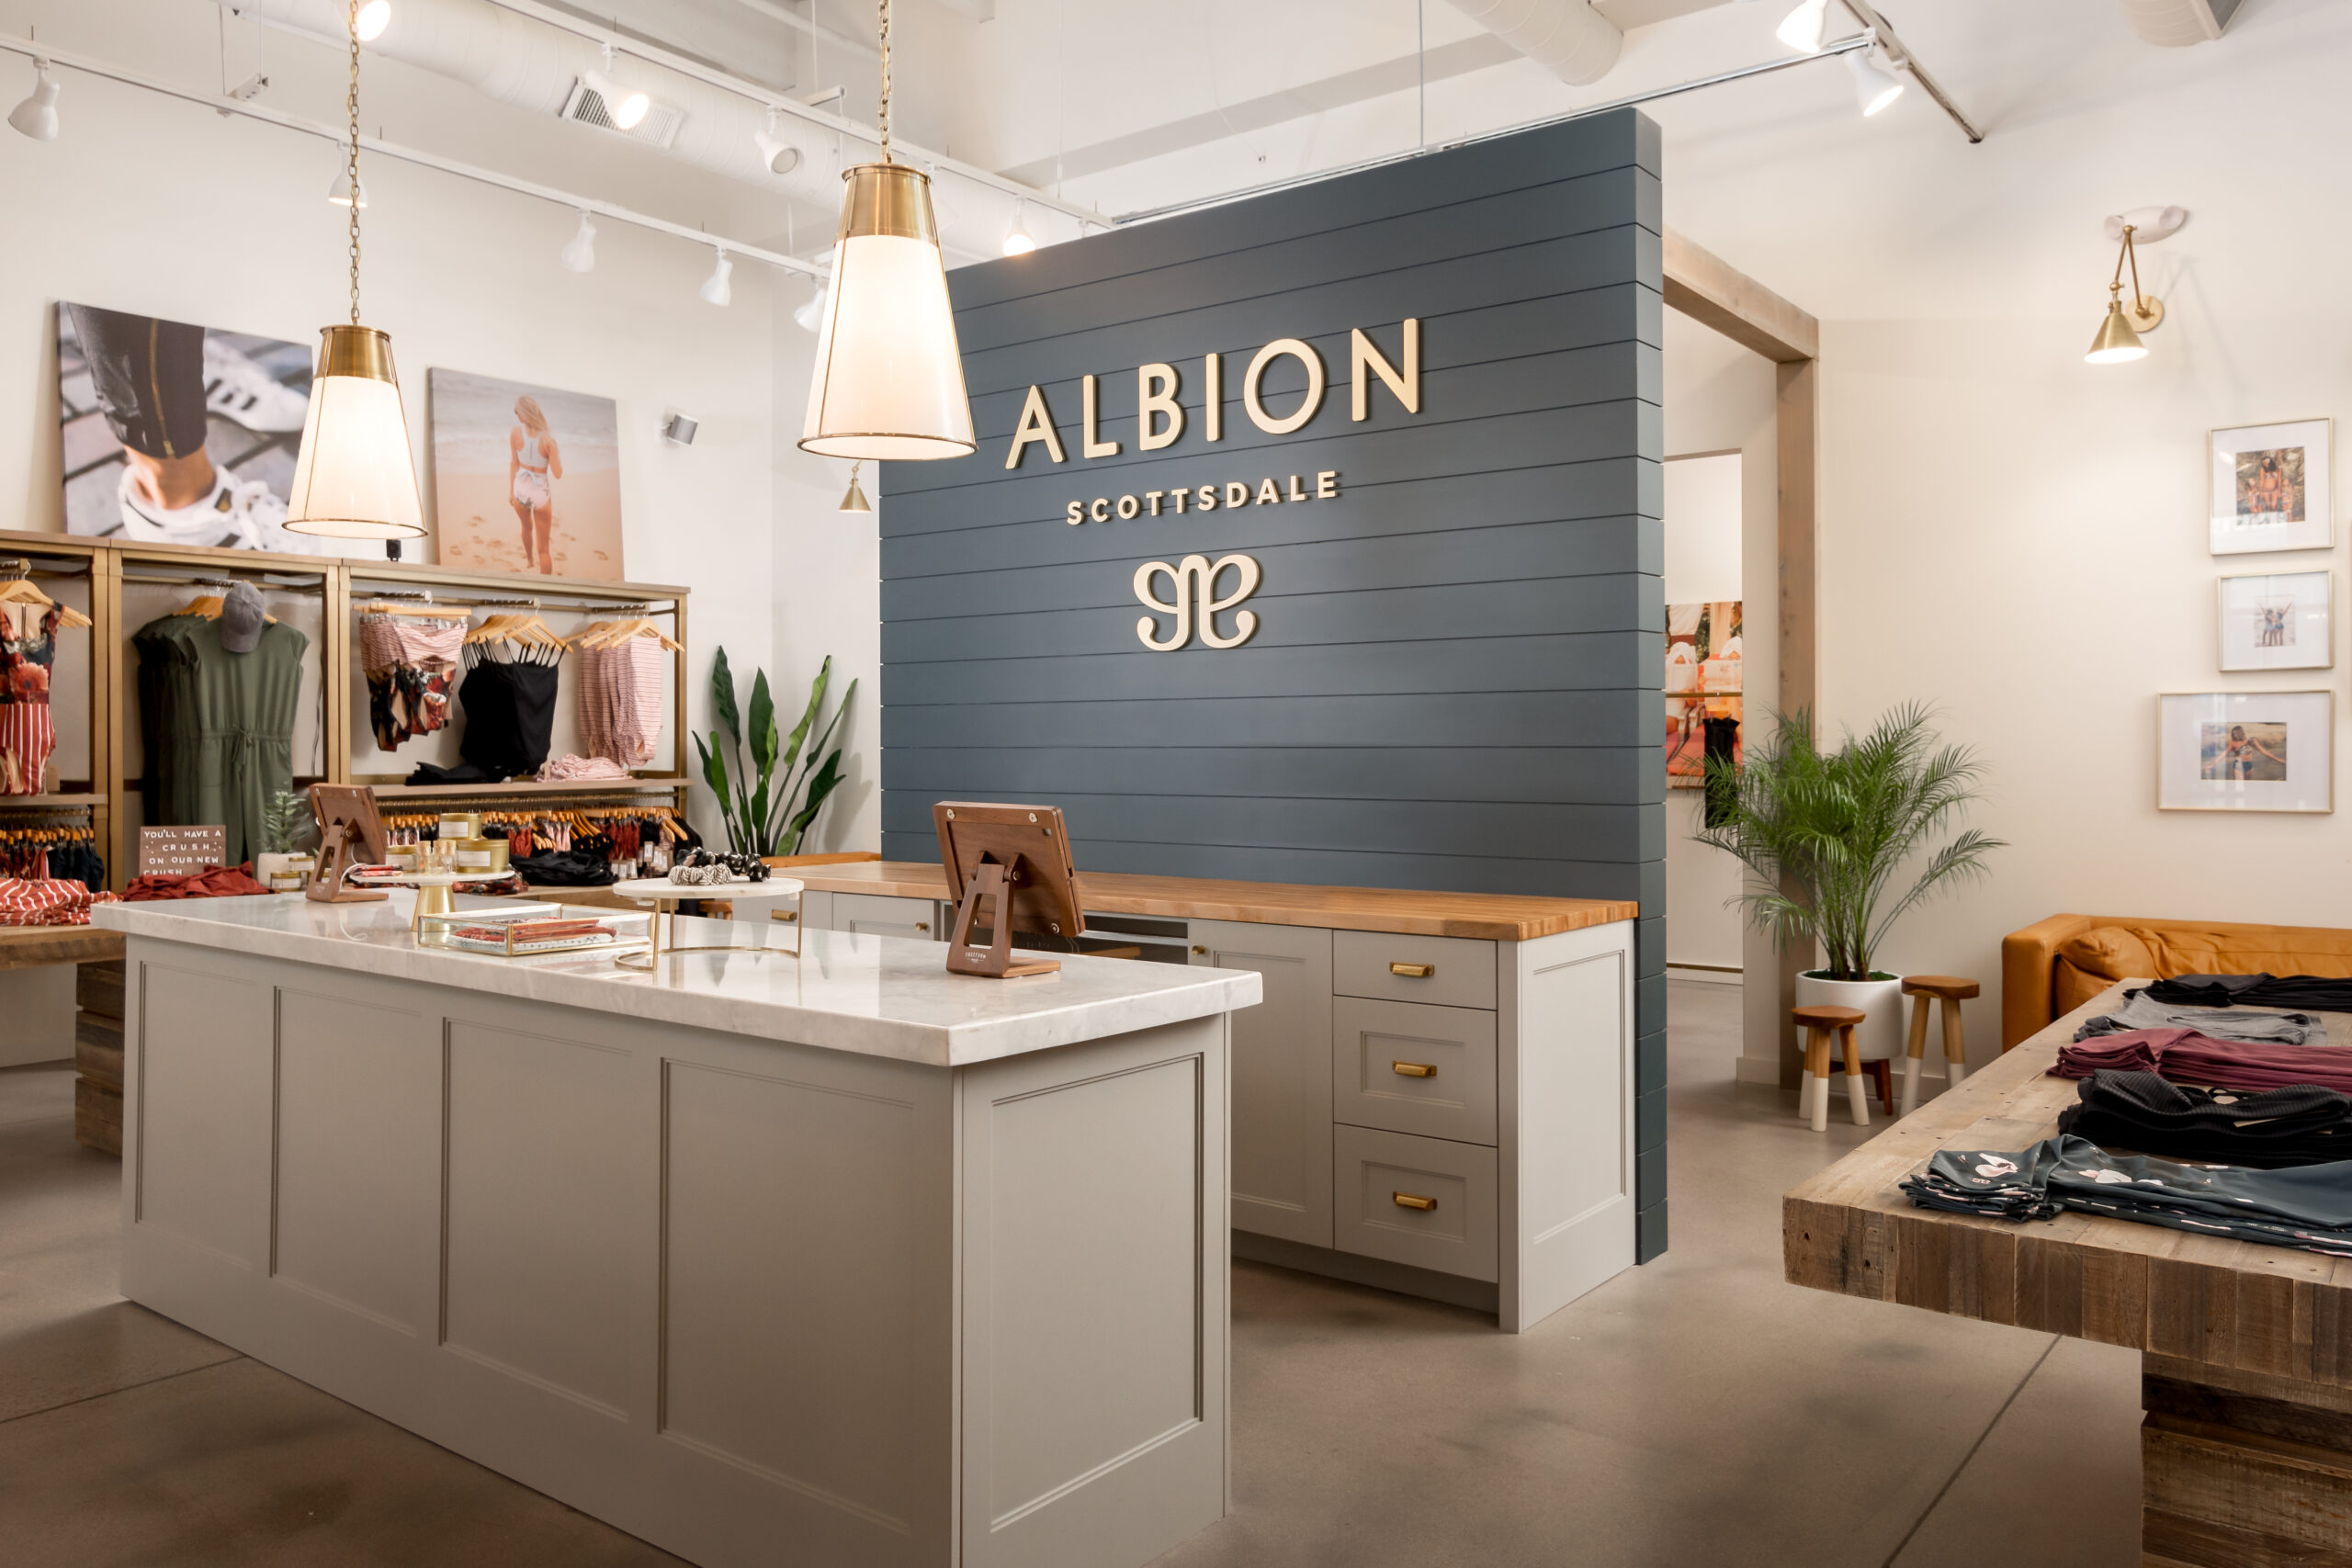 Albion (4 of 5)